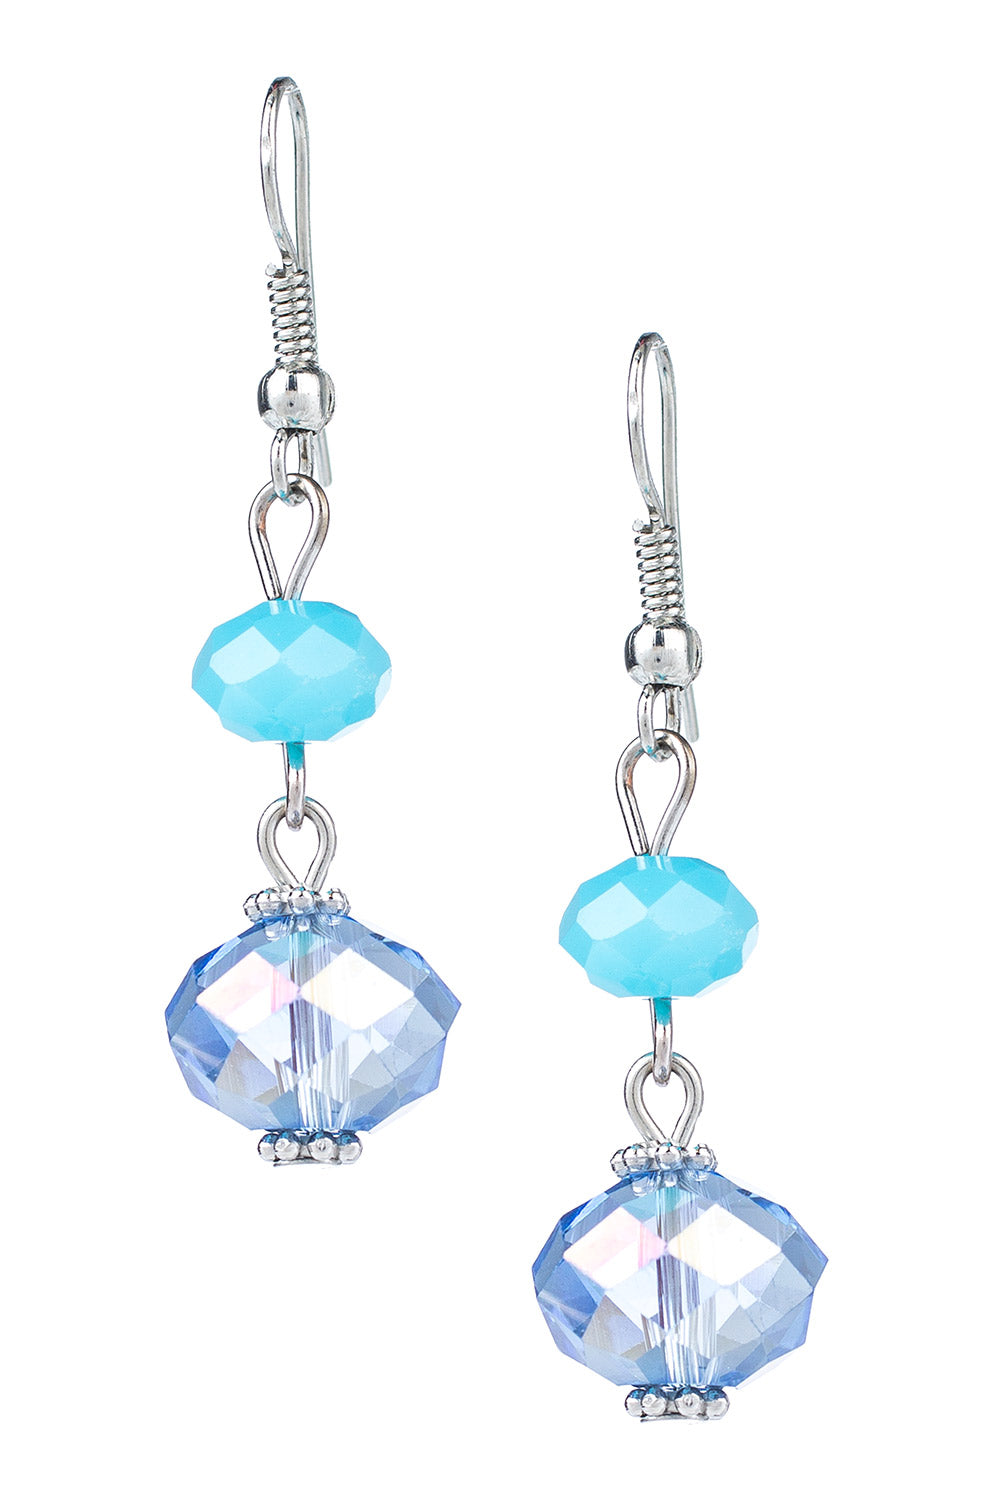 Type 2 Jellyfish Bloom Earrings